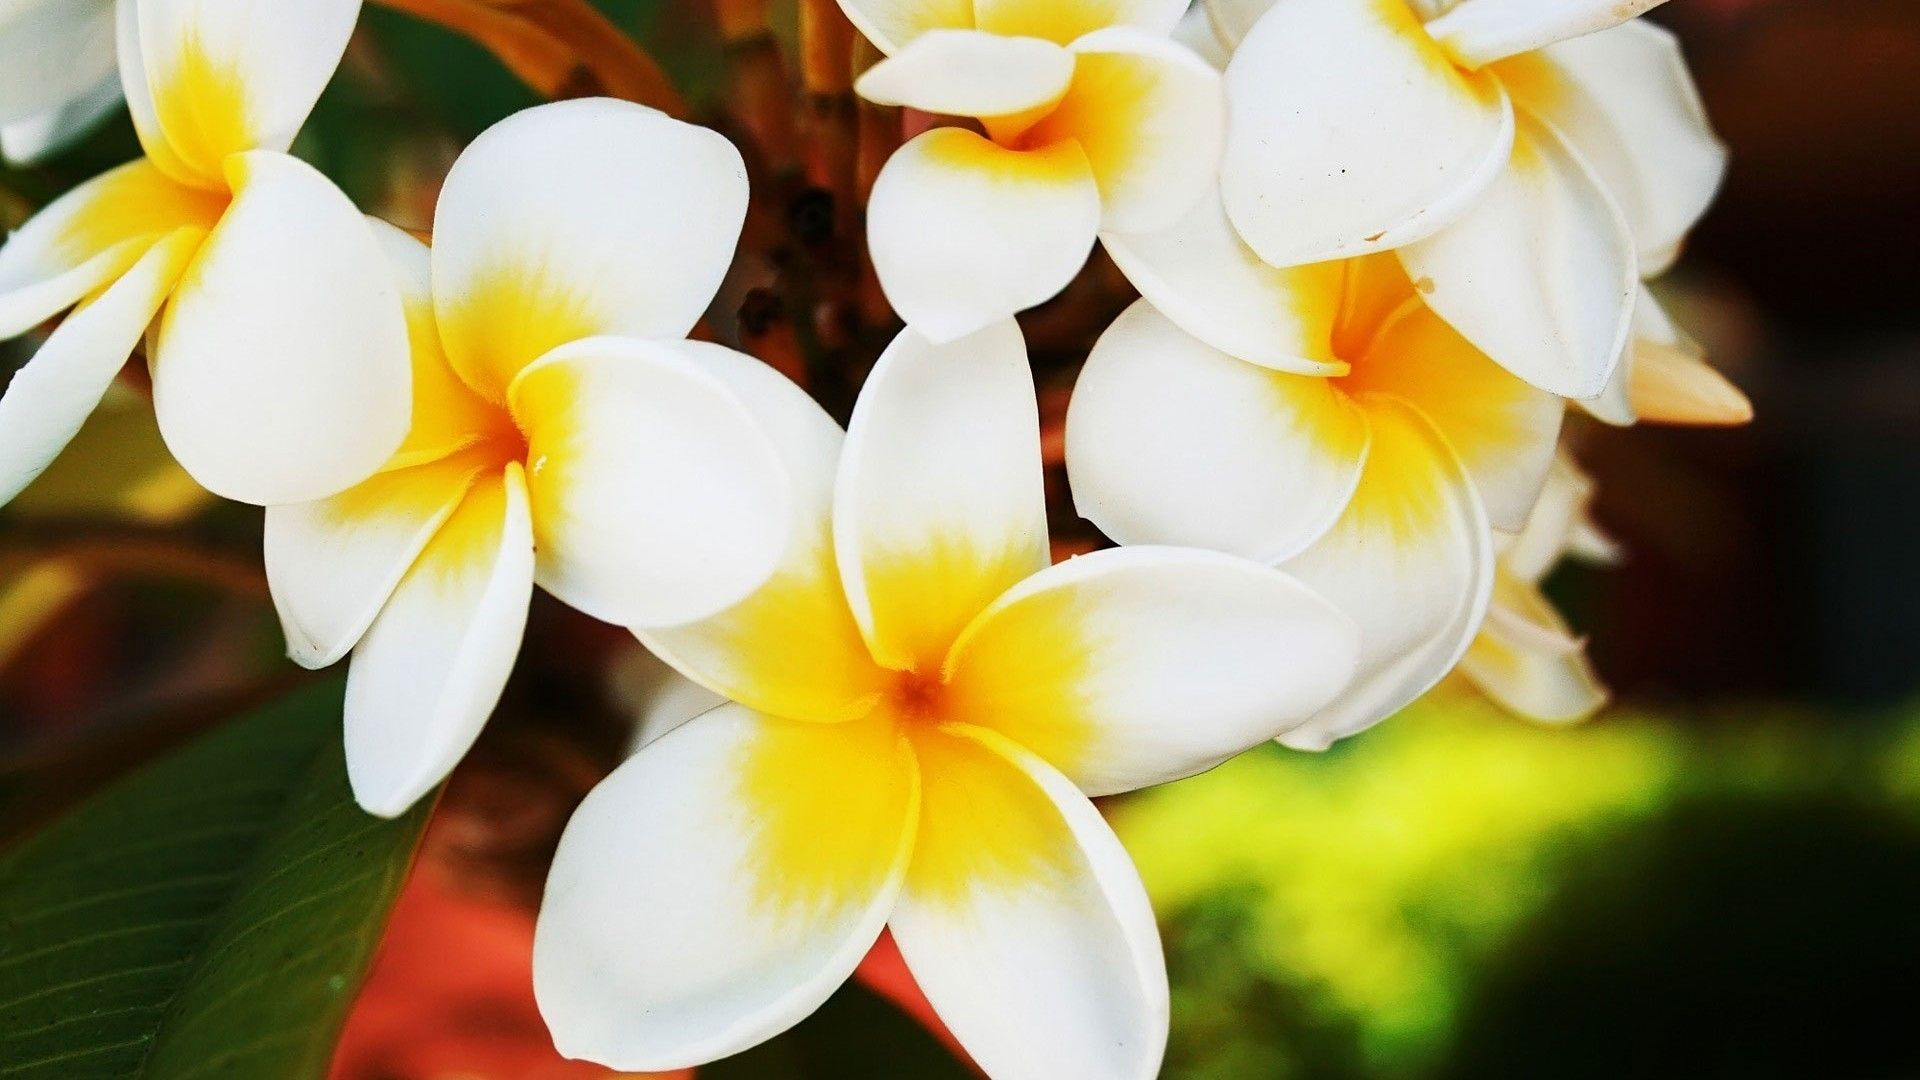 Flowers Pretty Yellow White Flower Wallpaper Desktop Full Size ...